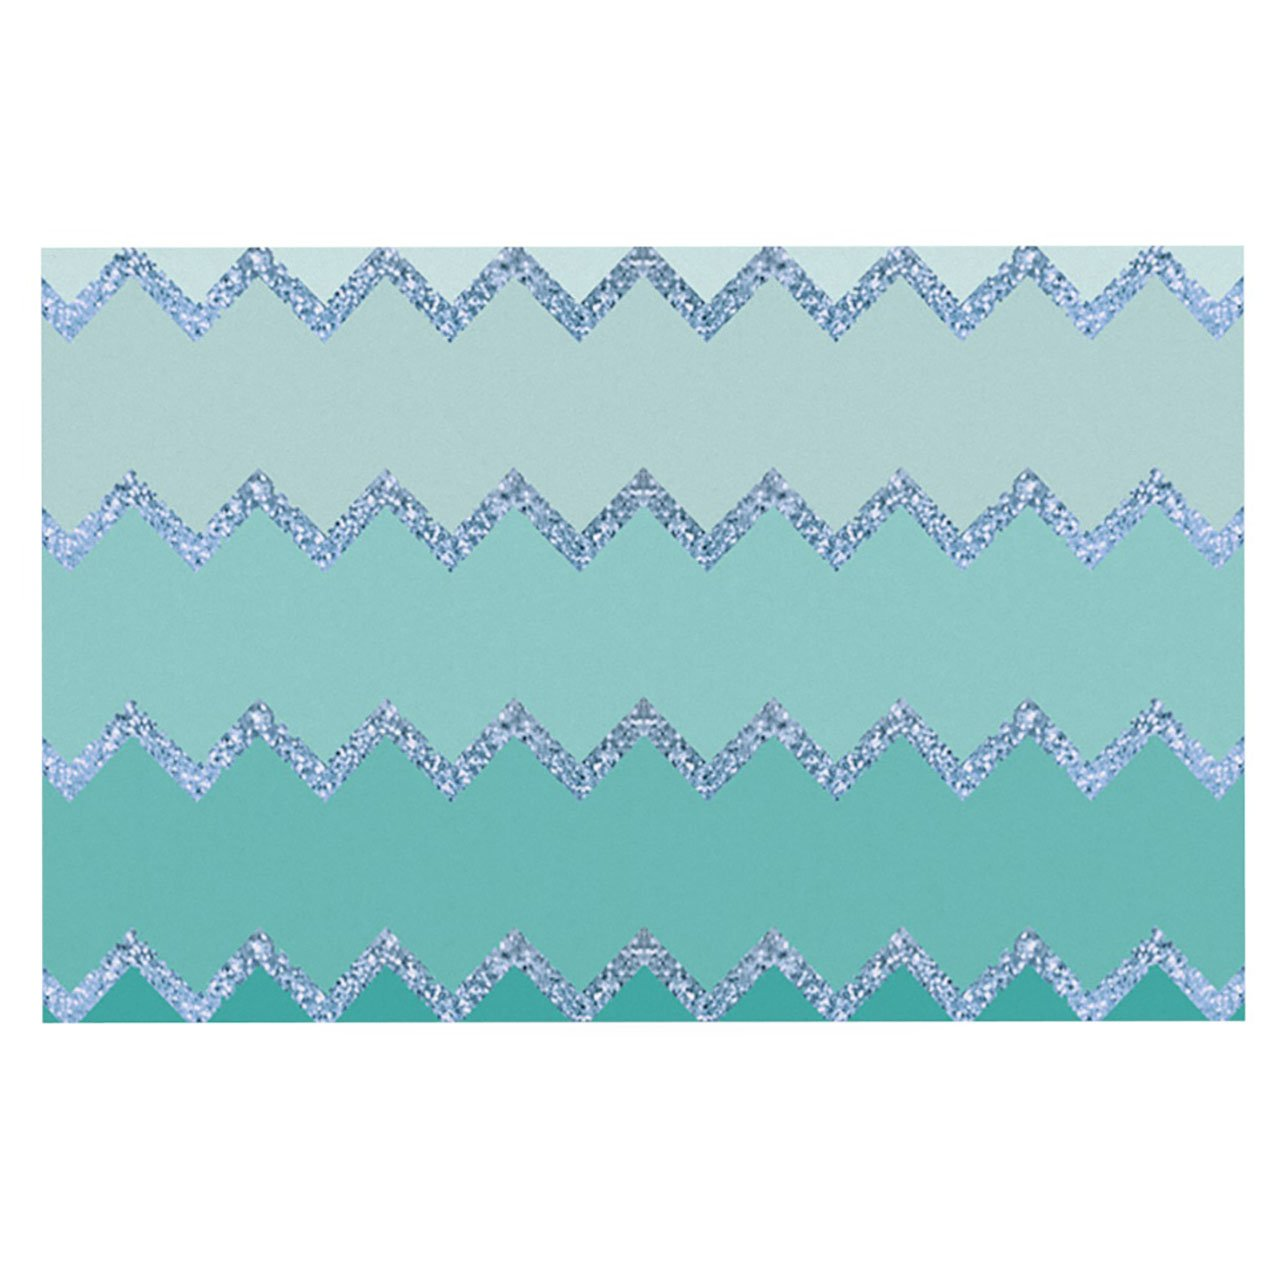 Kess InHouse  Monika Strigel ''Avalon Mint Ombre'' Aqua Green Pet Bowl Placemat for Dog and Cat Feeding Mat, 18-Inch by 13-Inch